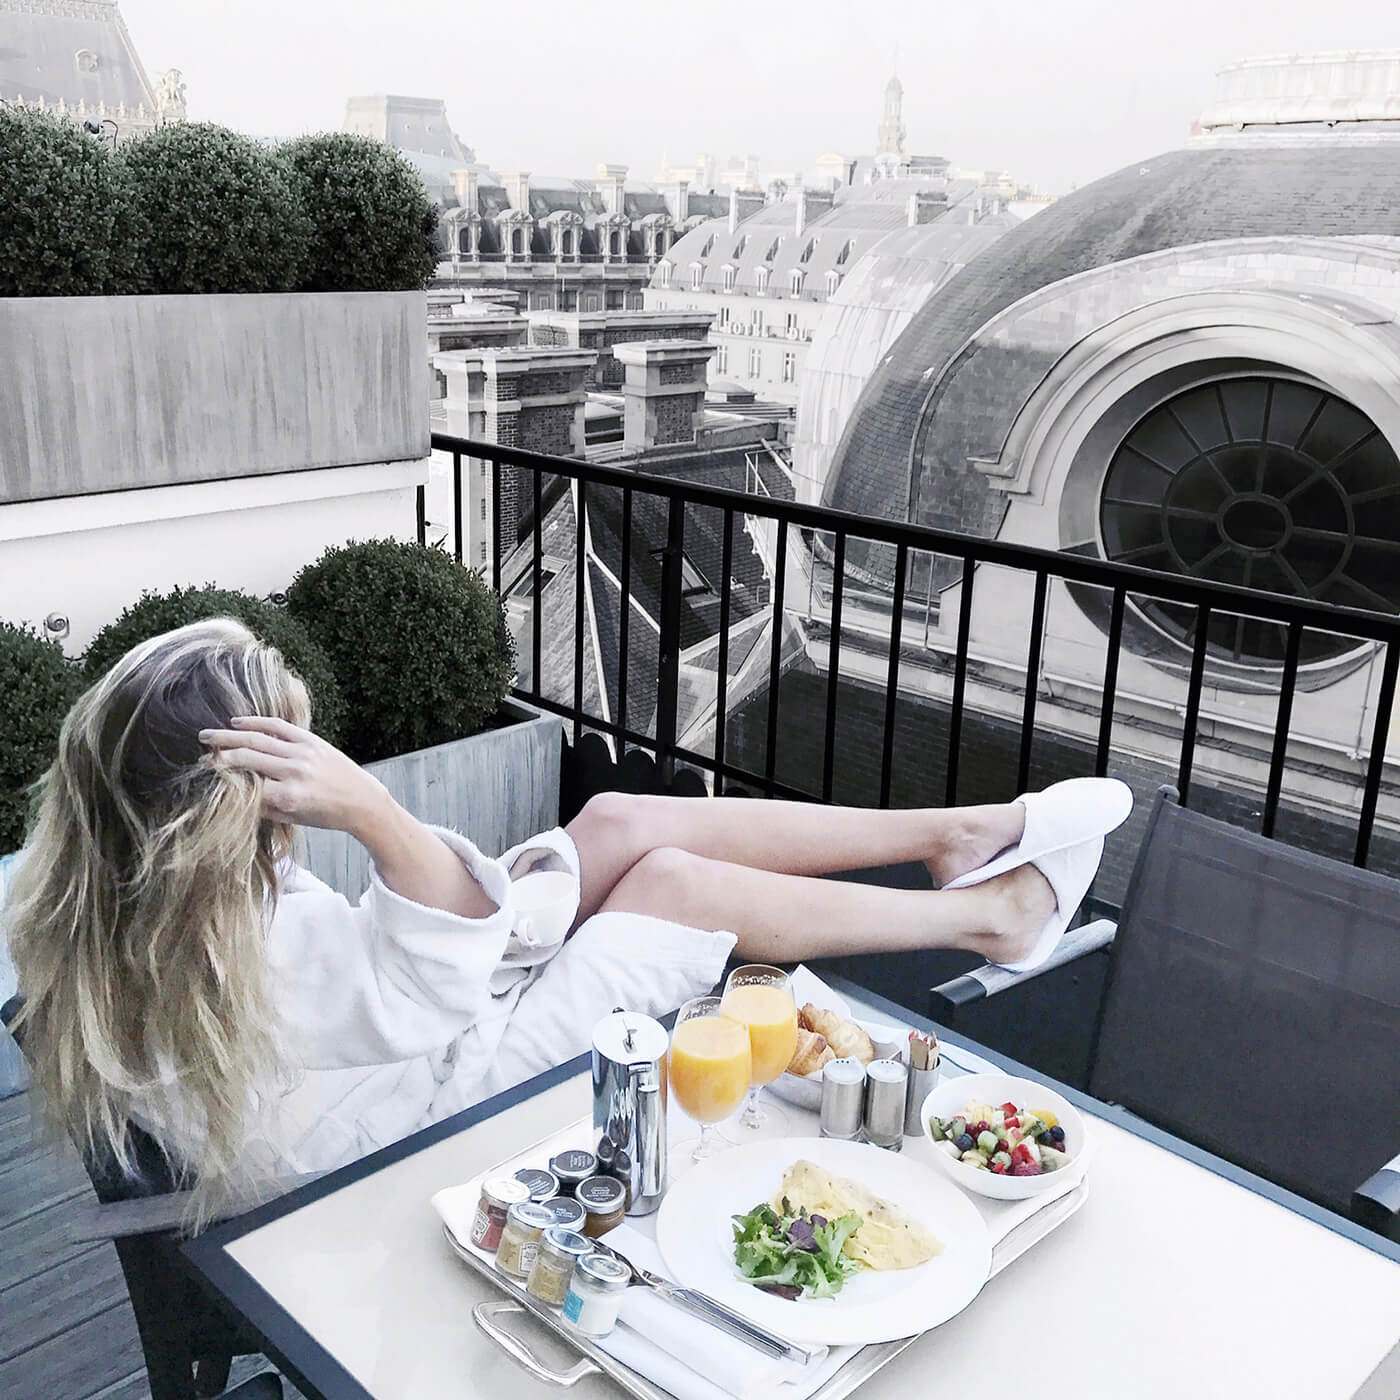 Best Hotel in Paris: Grand Hotel du Palais Royal - Where To Stay in Paris - Best Instagram Hotel Paris - Carly Cristman